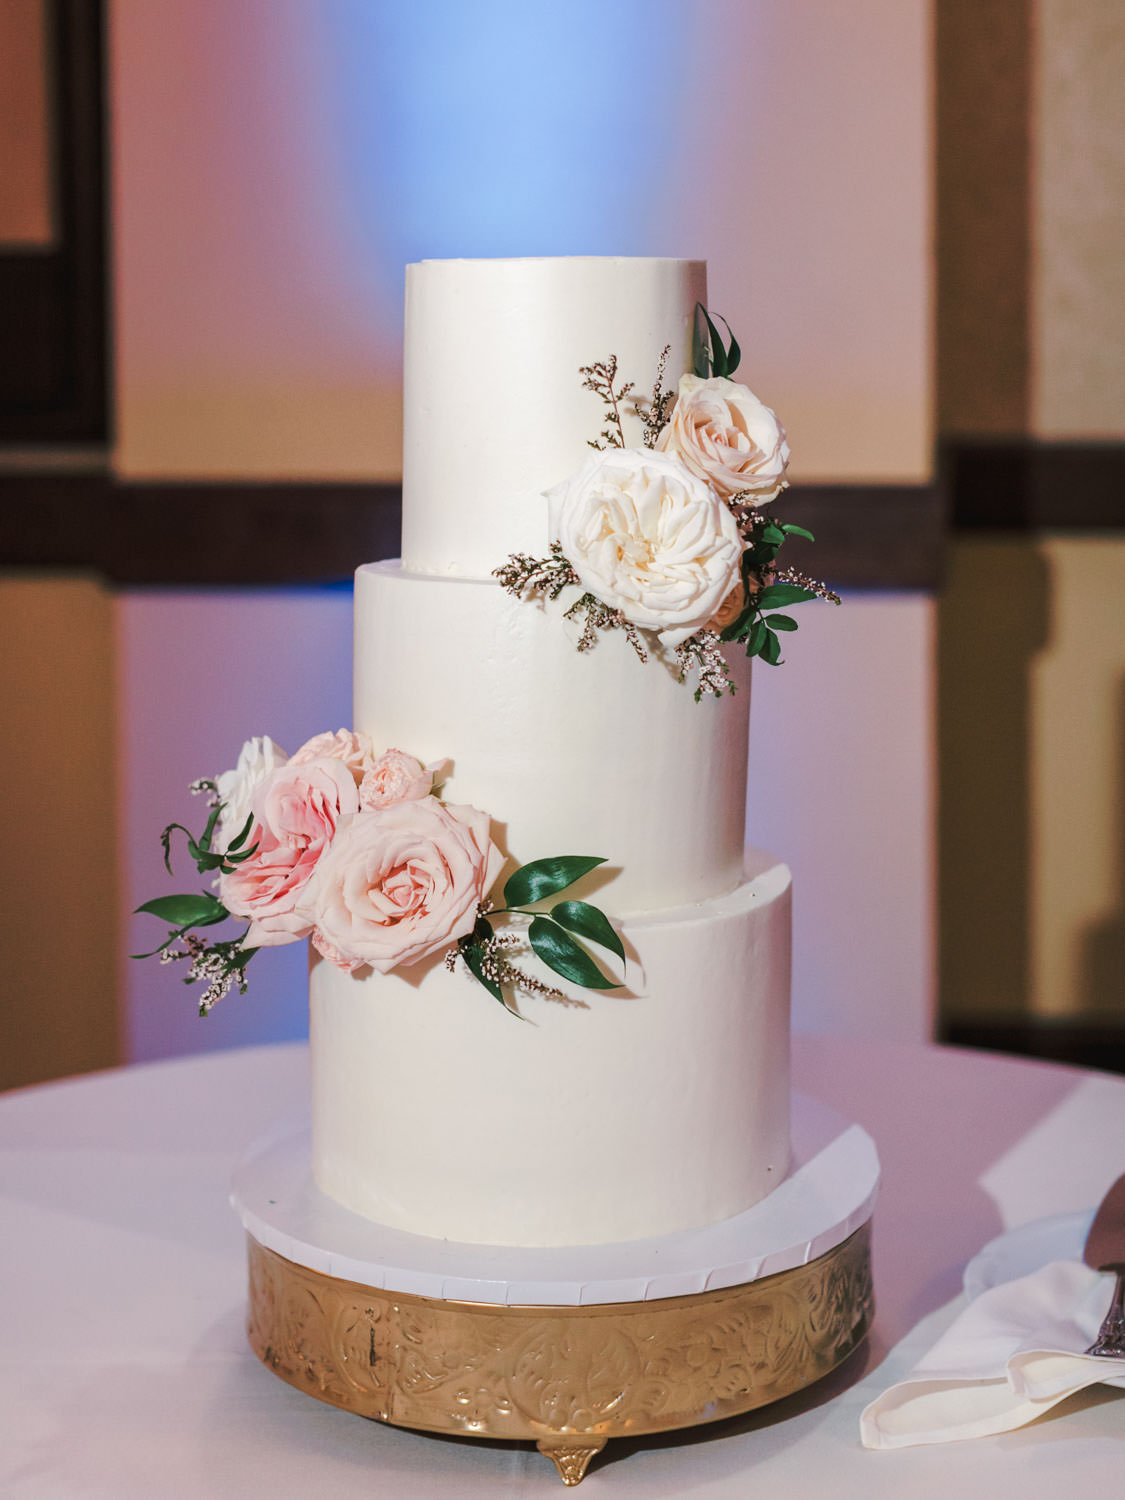 Wedding cake with three white tiers and ivory and pink roses with pops of greenery. photo by Cavin Elizabeth Photography